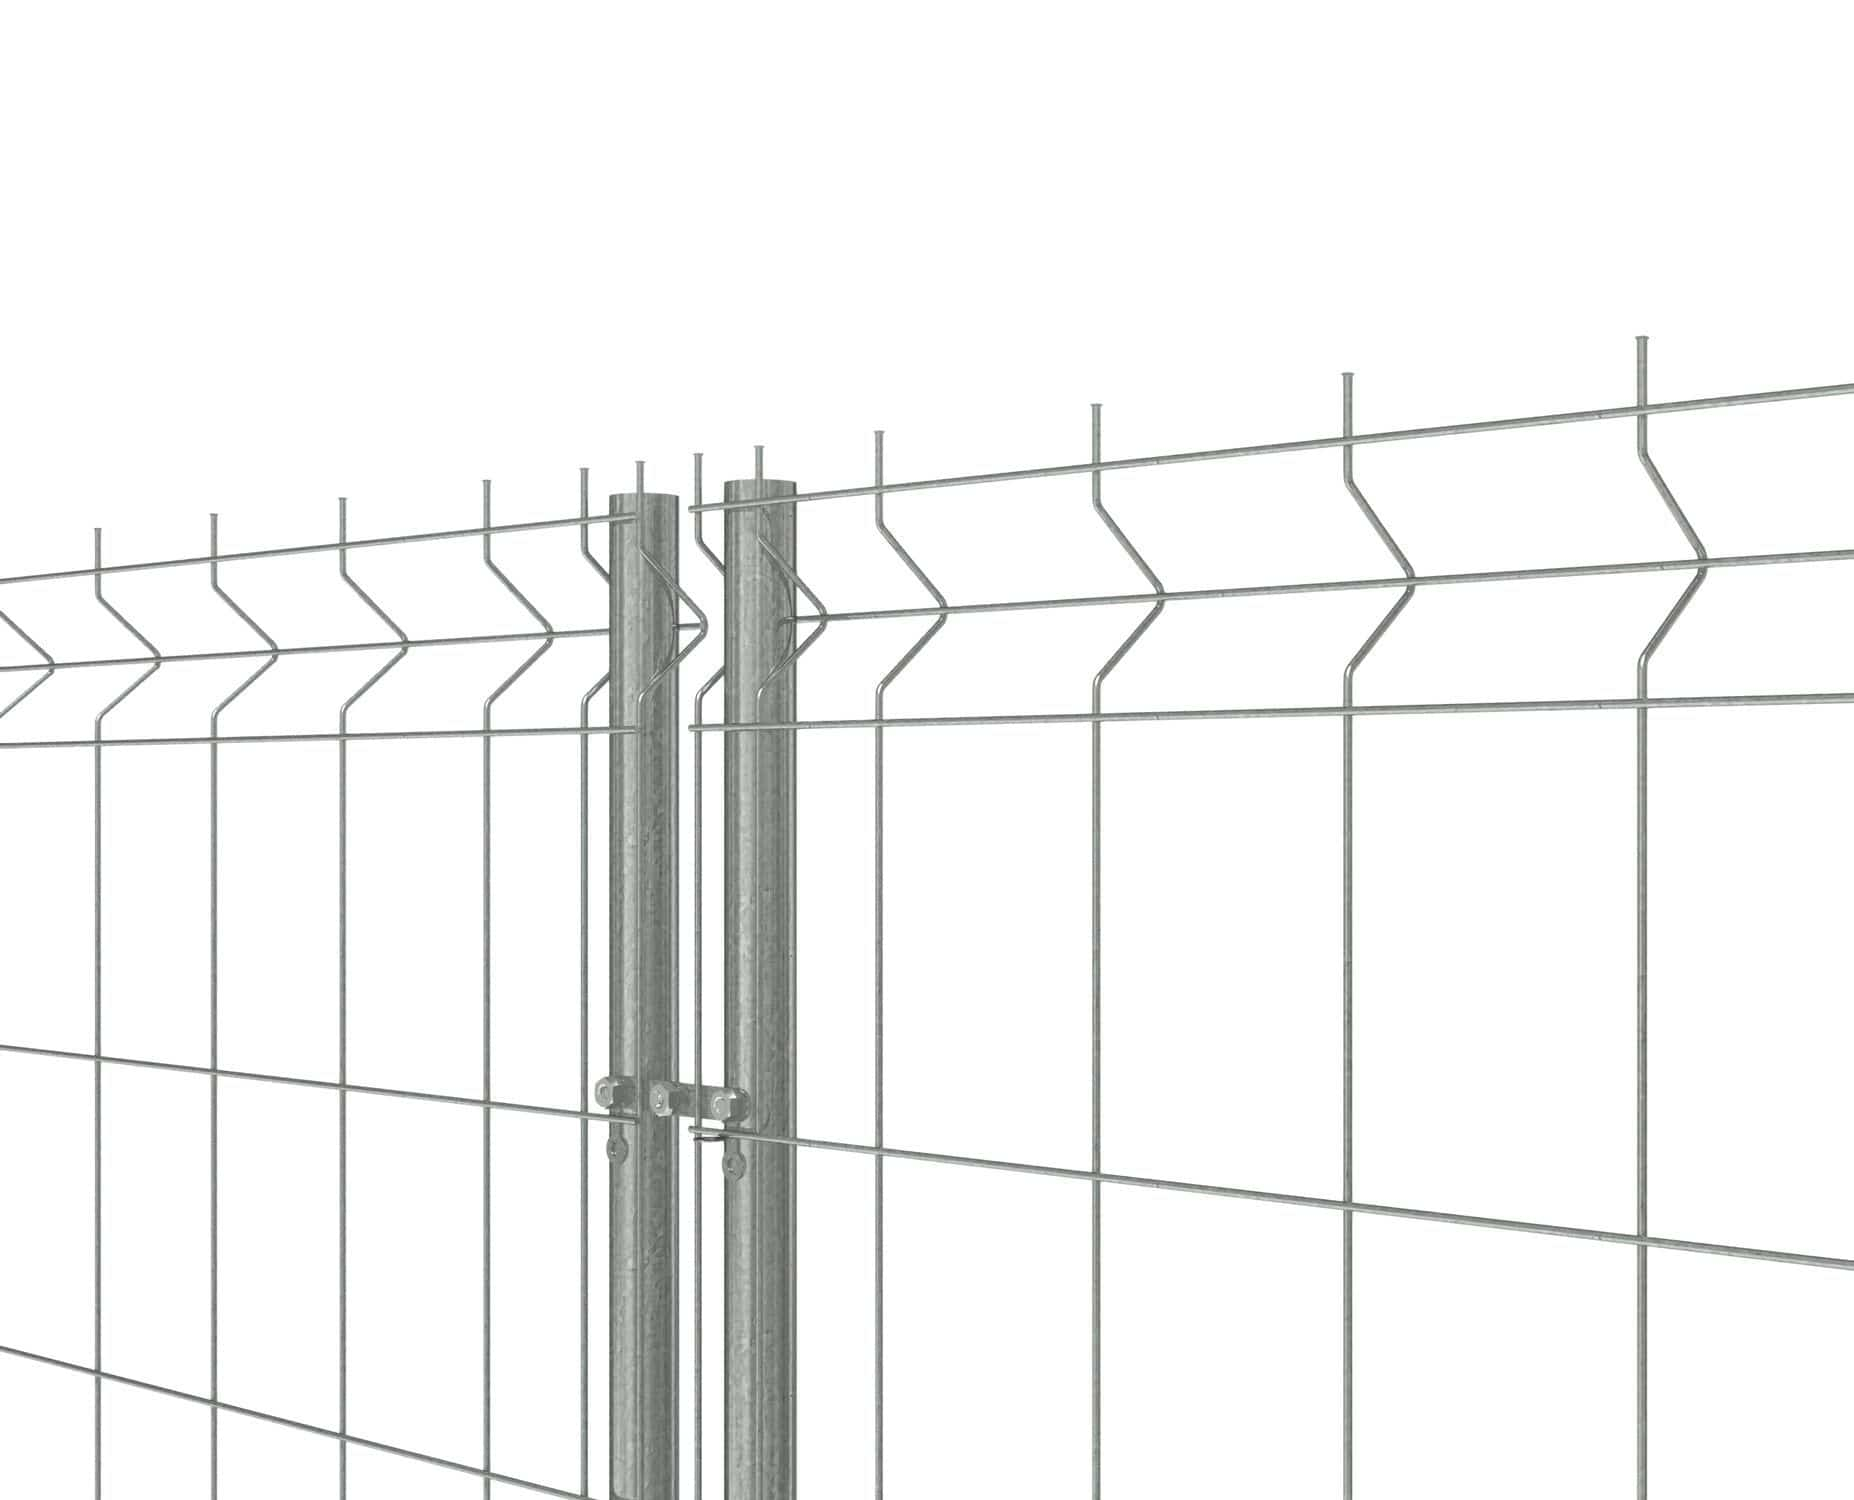 Construction site fence / wire mesh / metal - Indusmetal Torres